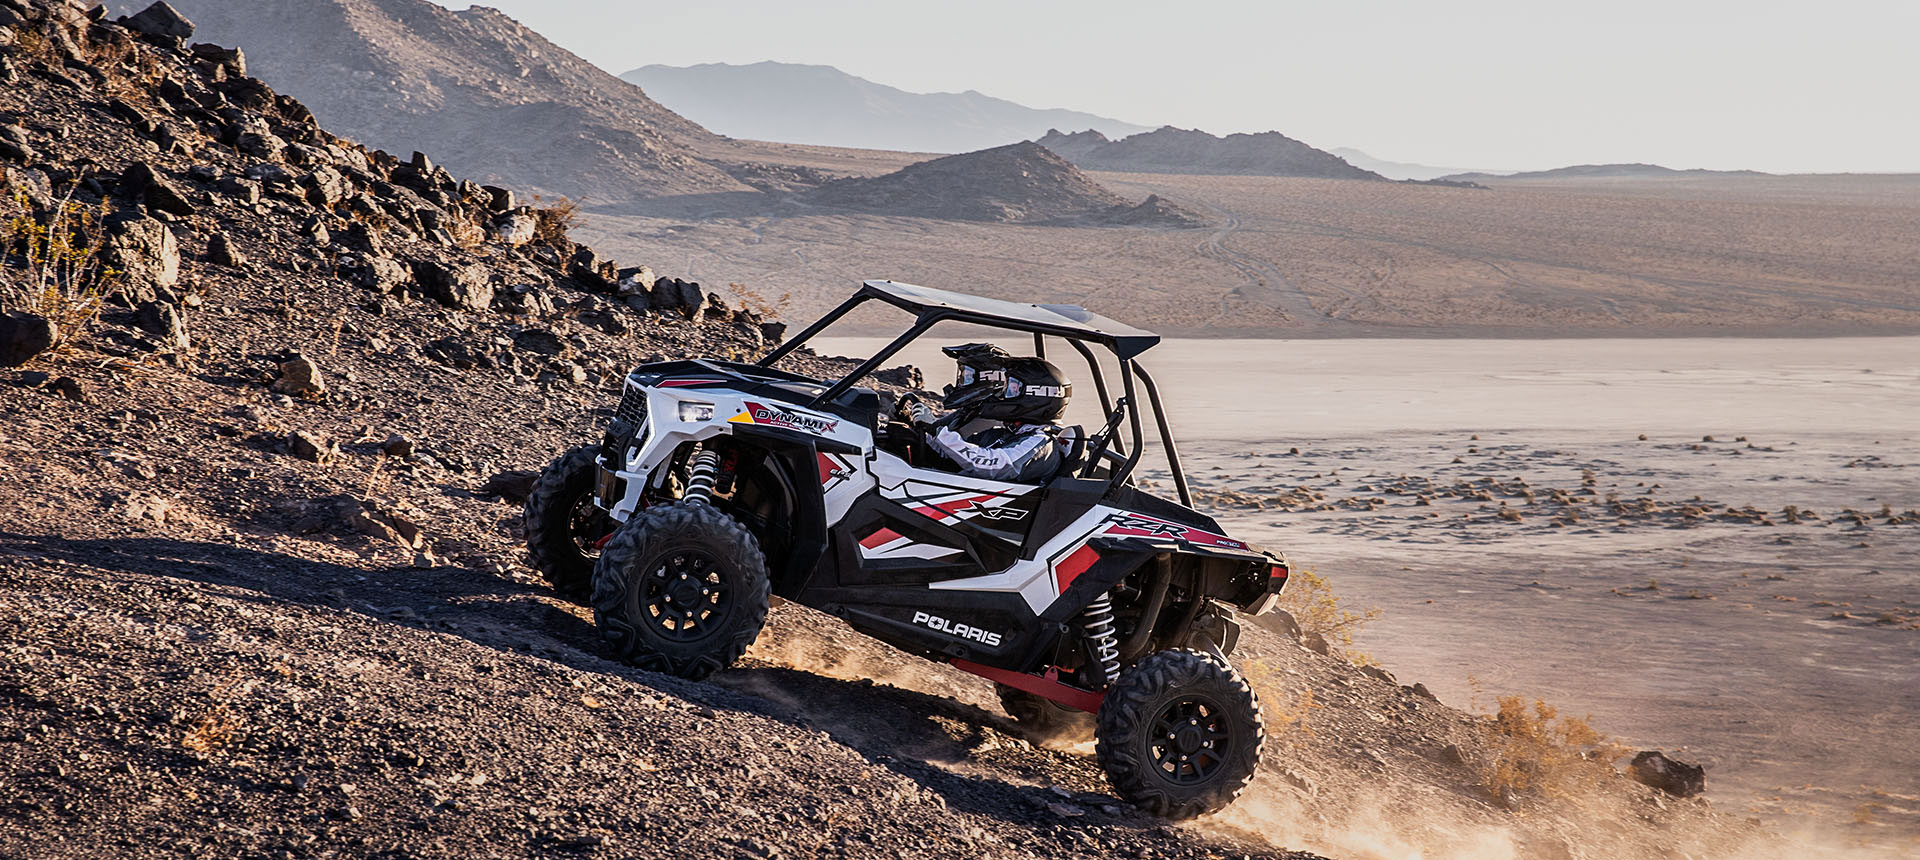 2019 Polaris RZR XP 1000 in Caroline, Wisconsin - Photo 5